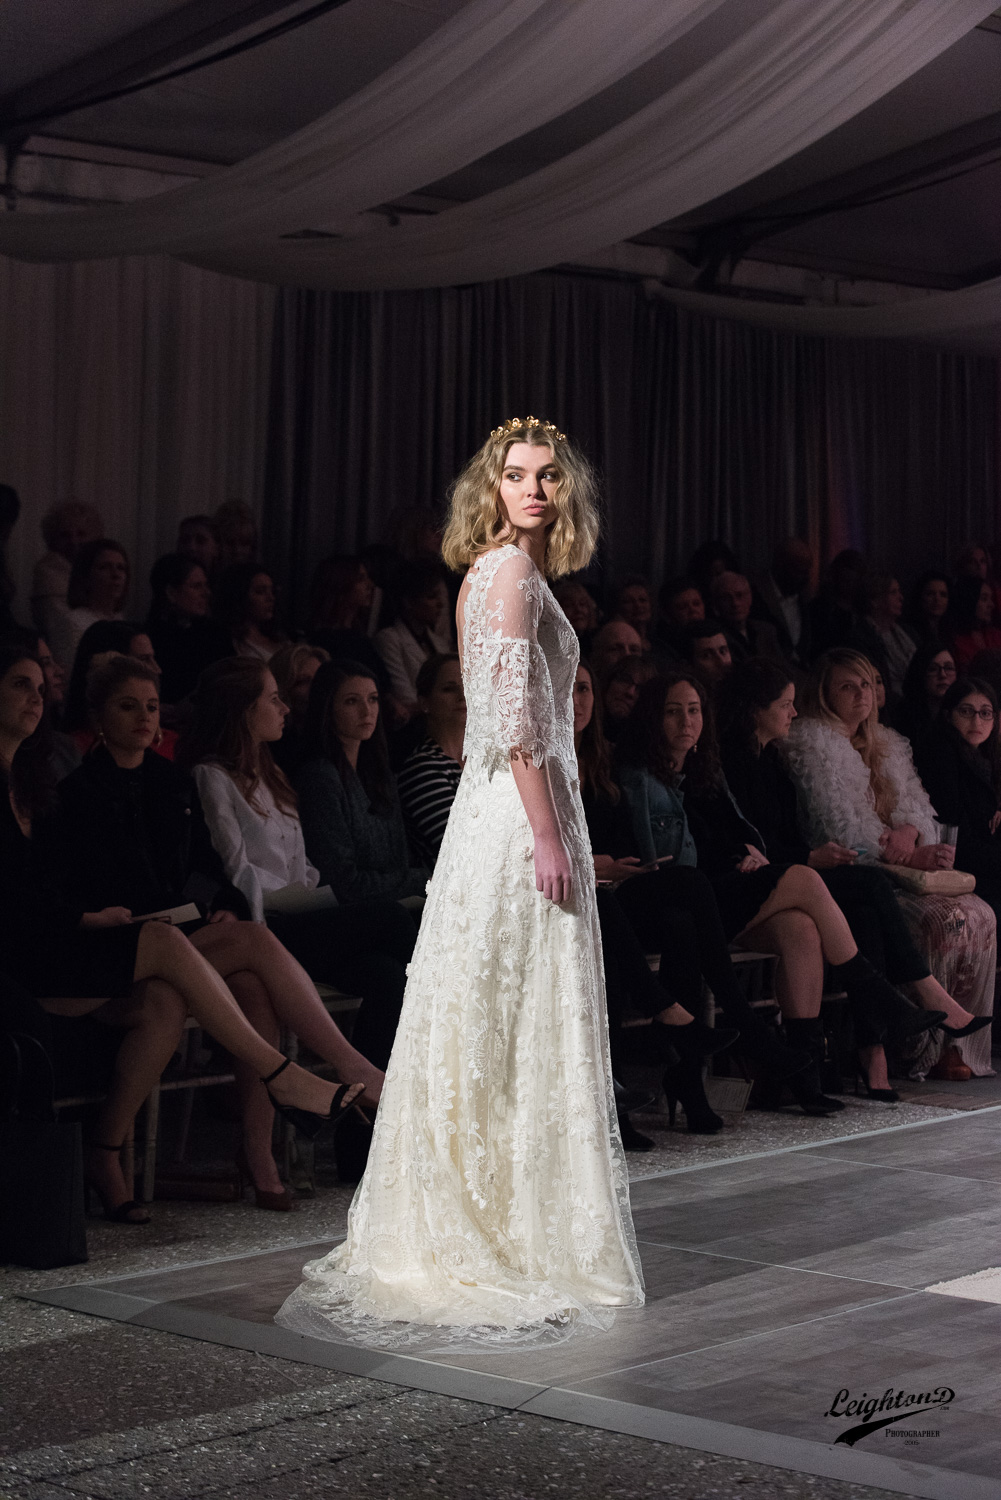 Animoto-ModernTrousseau-CHS Wedding Week 2018-LeightonD-9839.jpg